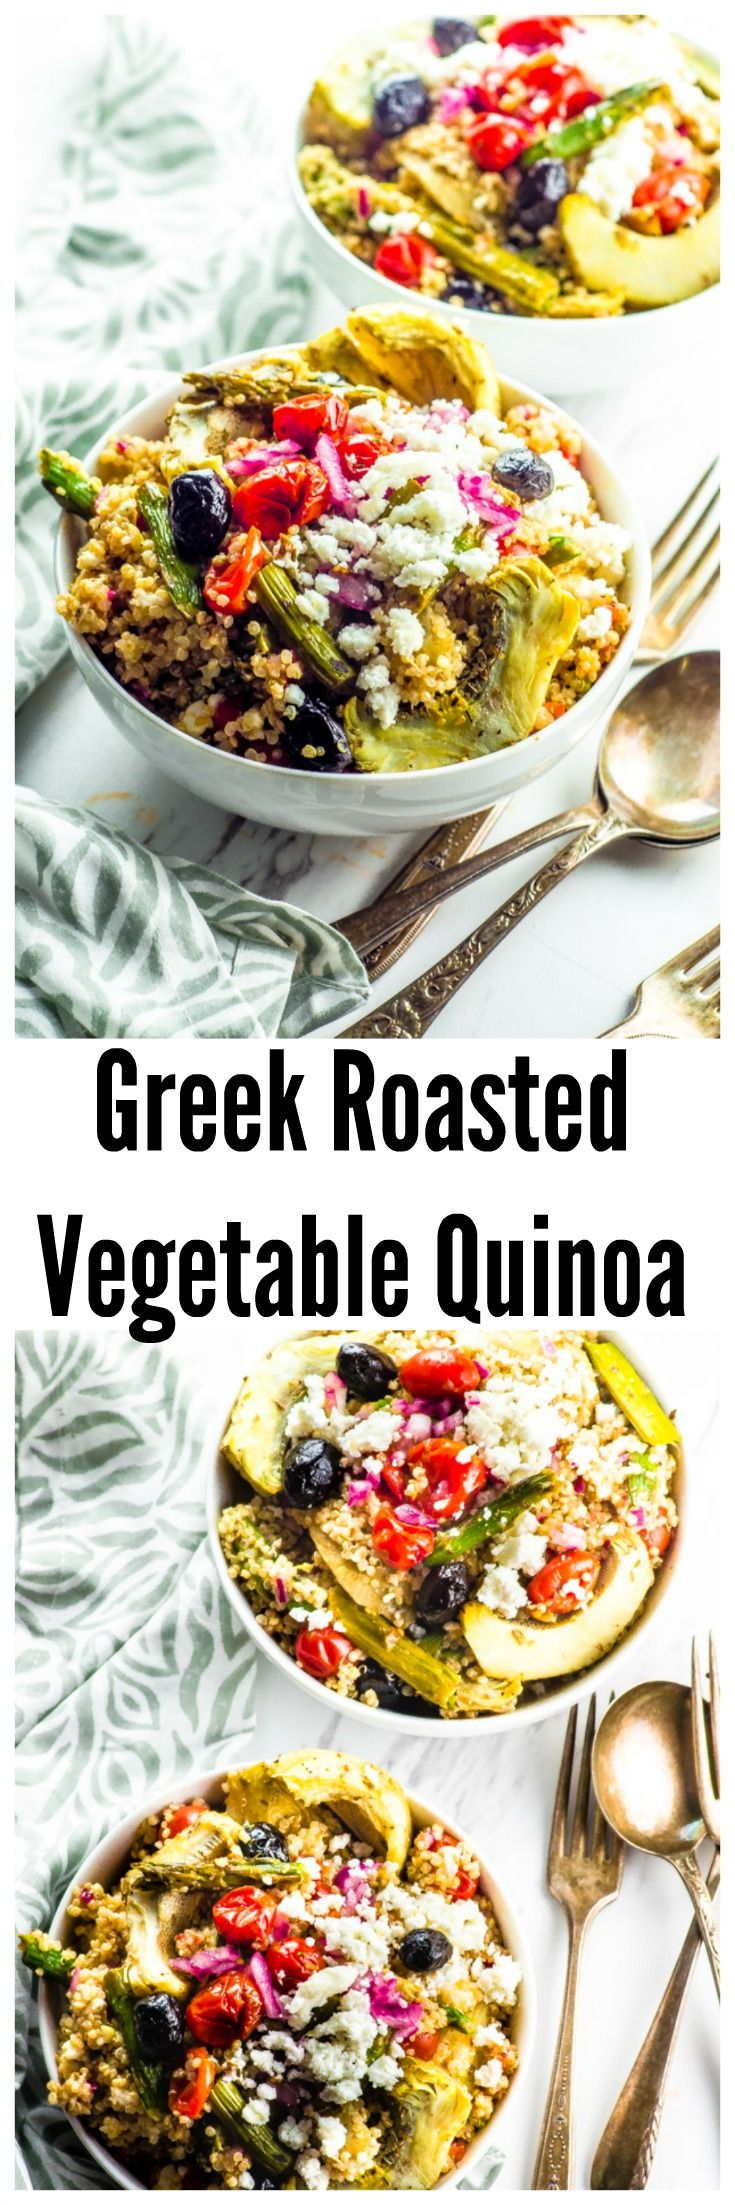 Roasted Vegetable And Quinoa Greek Salad